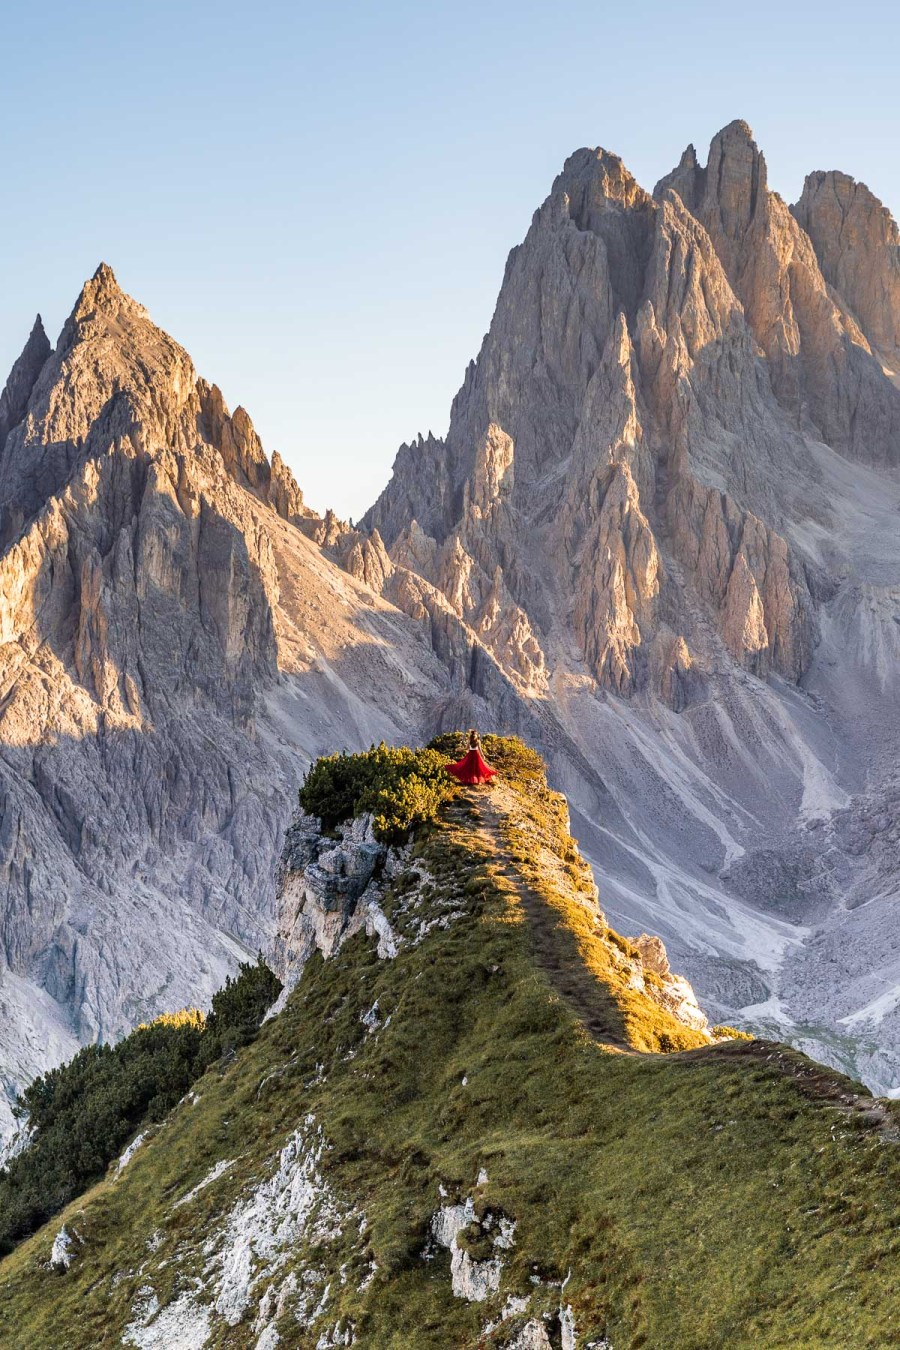 Girl in a red dress standing on top of an epic viewpoint at Cadini di Misurina in the Italian Dolomites